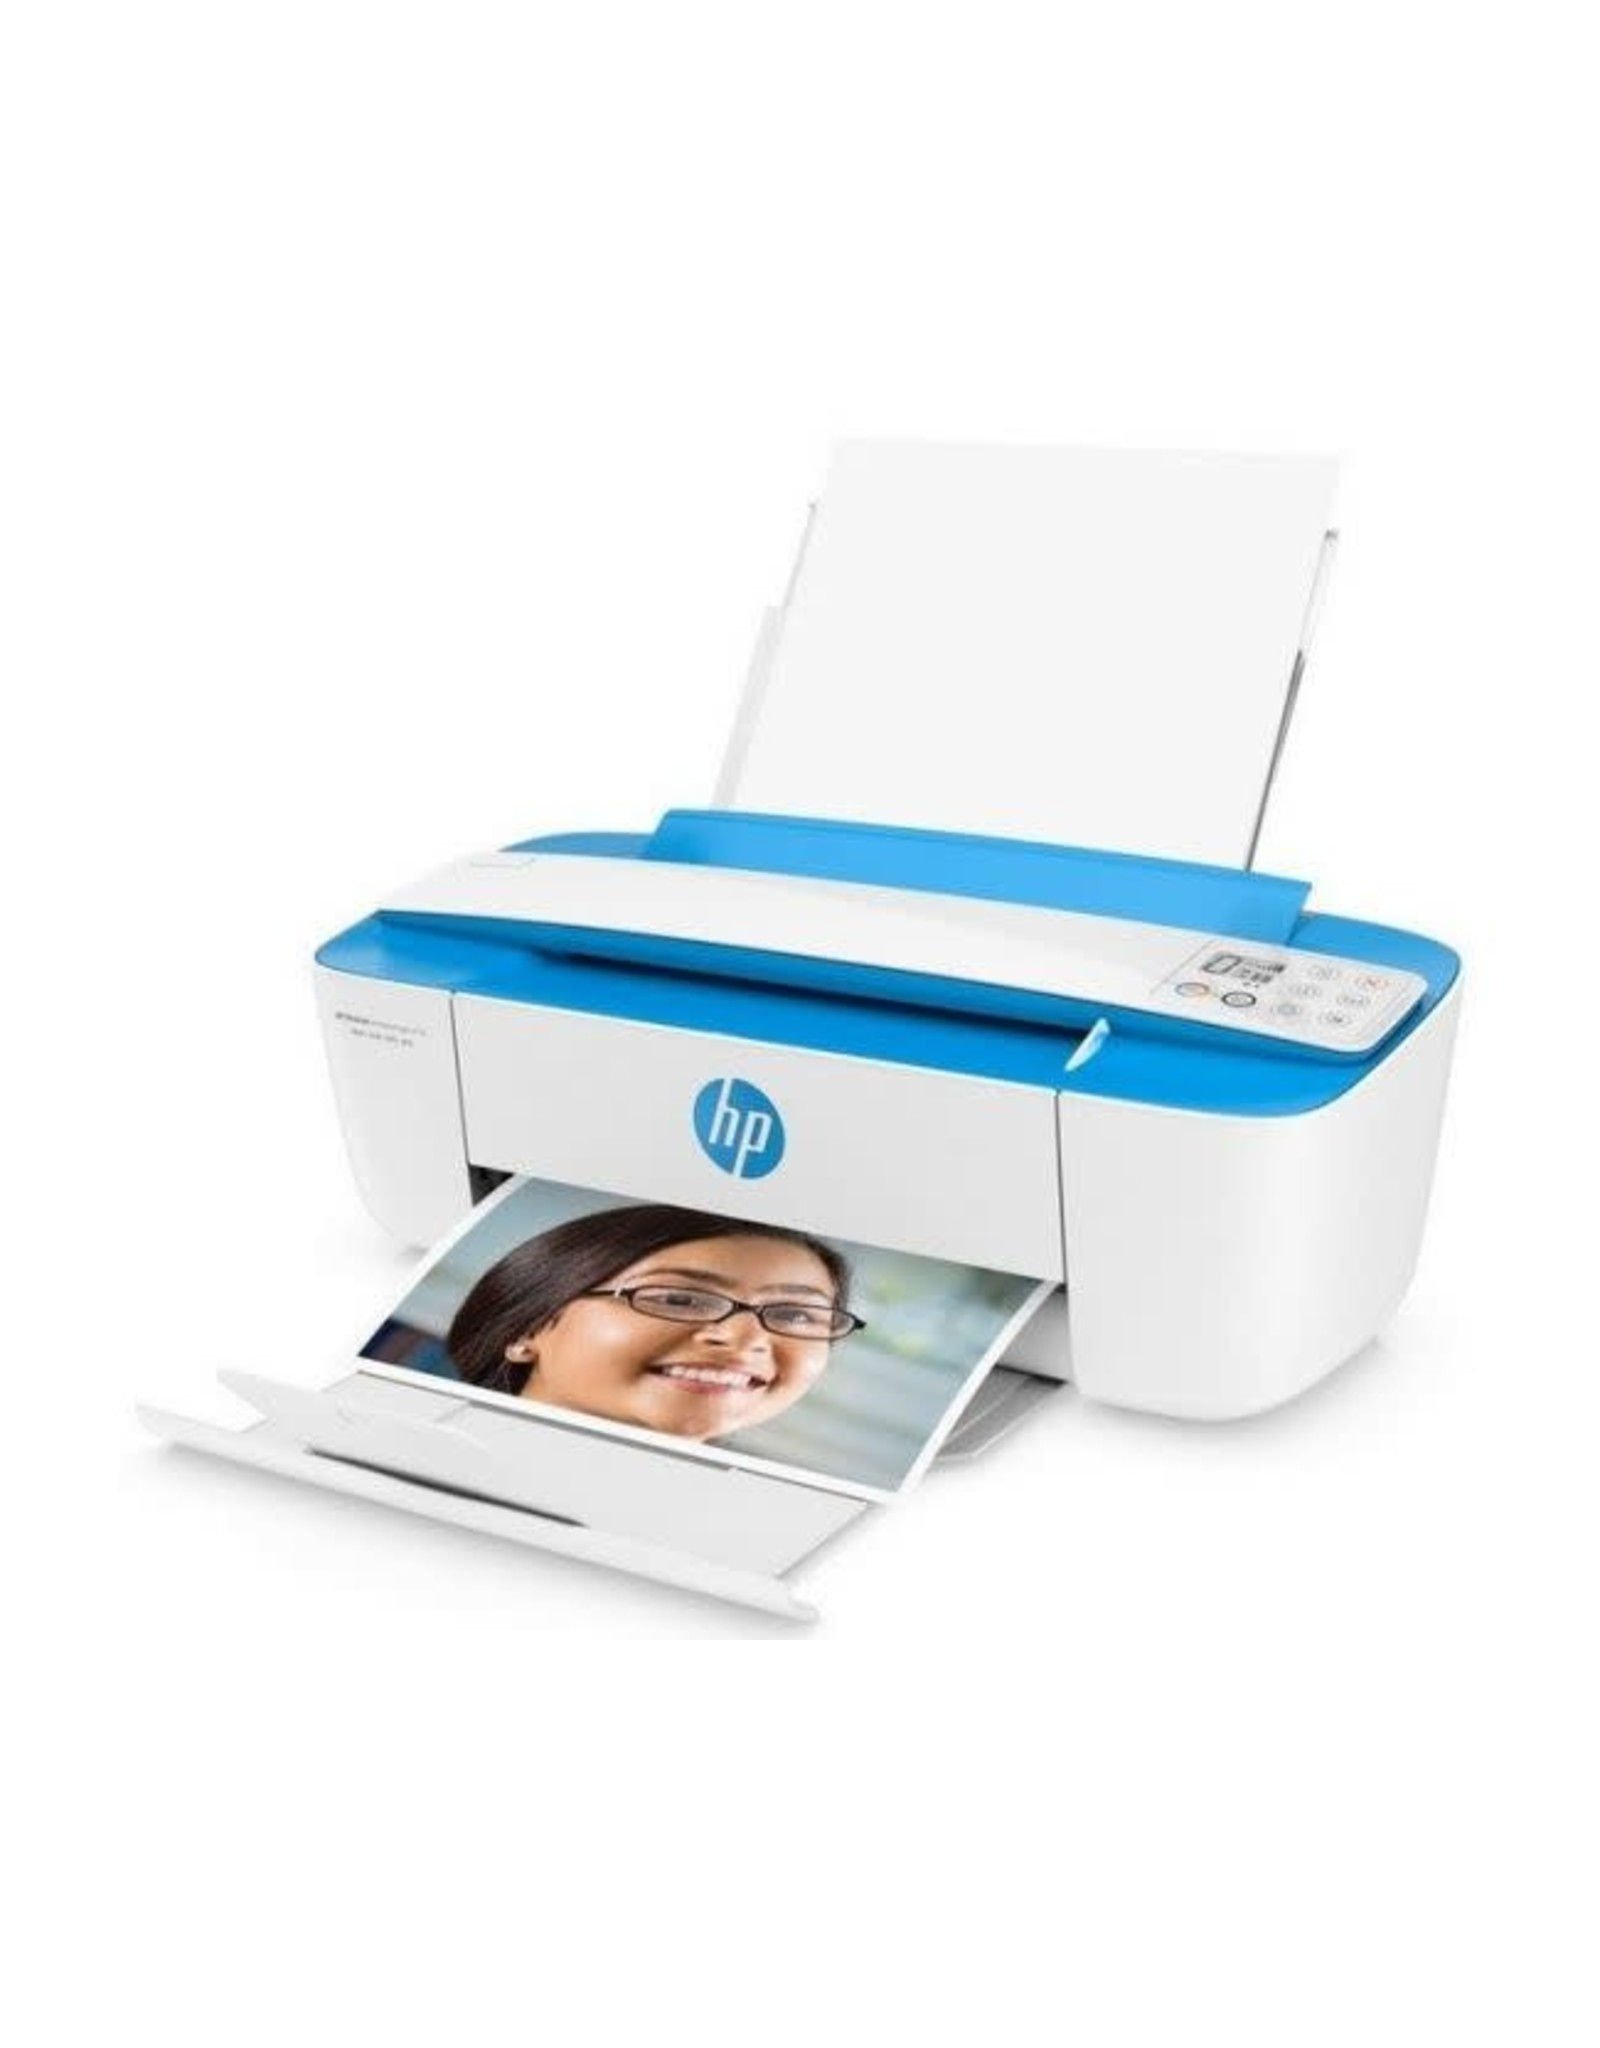 HP HP Deskjet 3775 (Blue) Printer